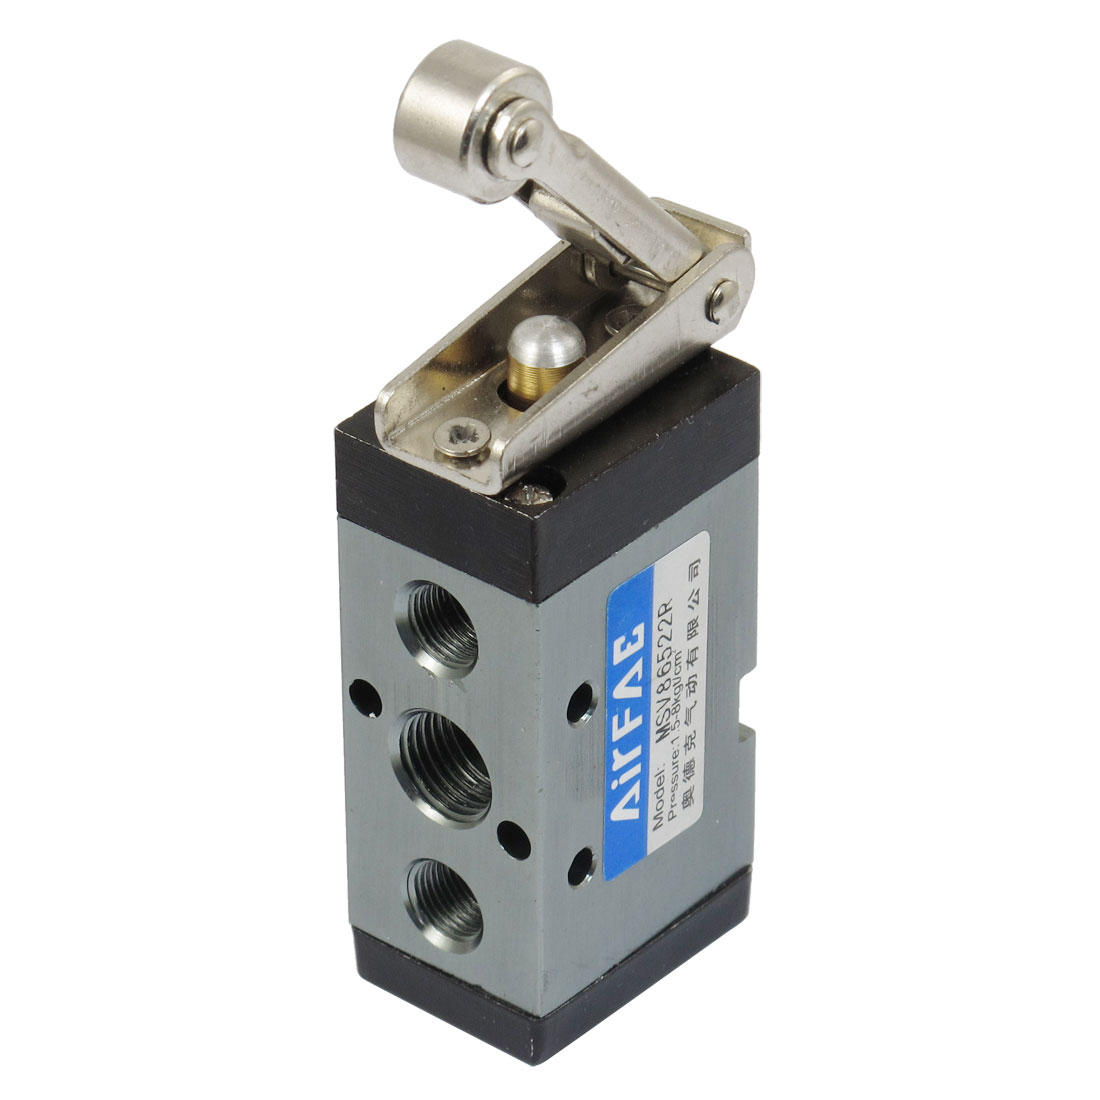 MSV-86522R 13mm Thread Input 2/5 Way Roller Type Solenoid Air Mechanical Valve